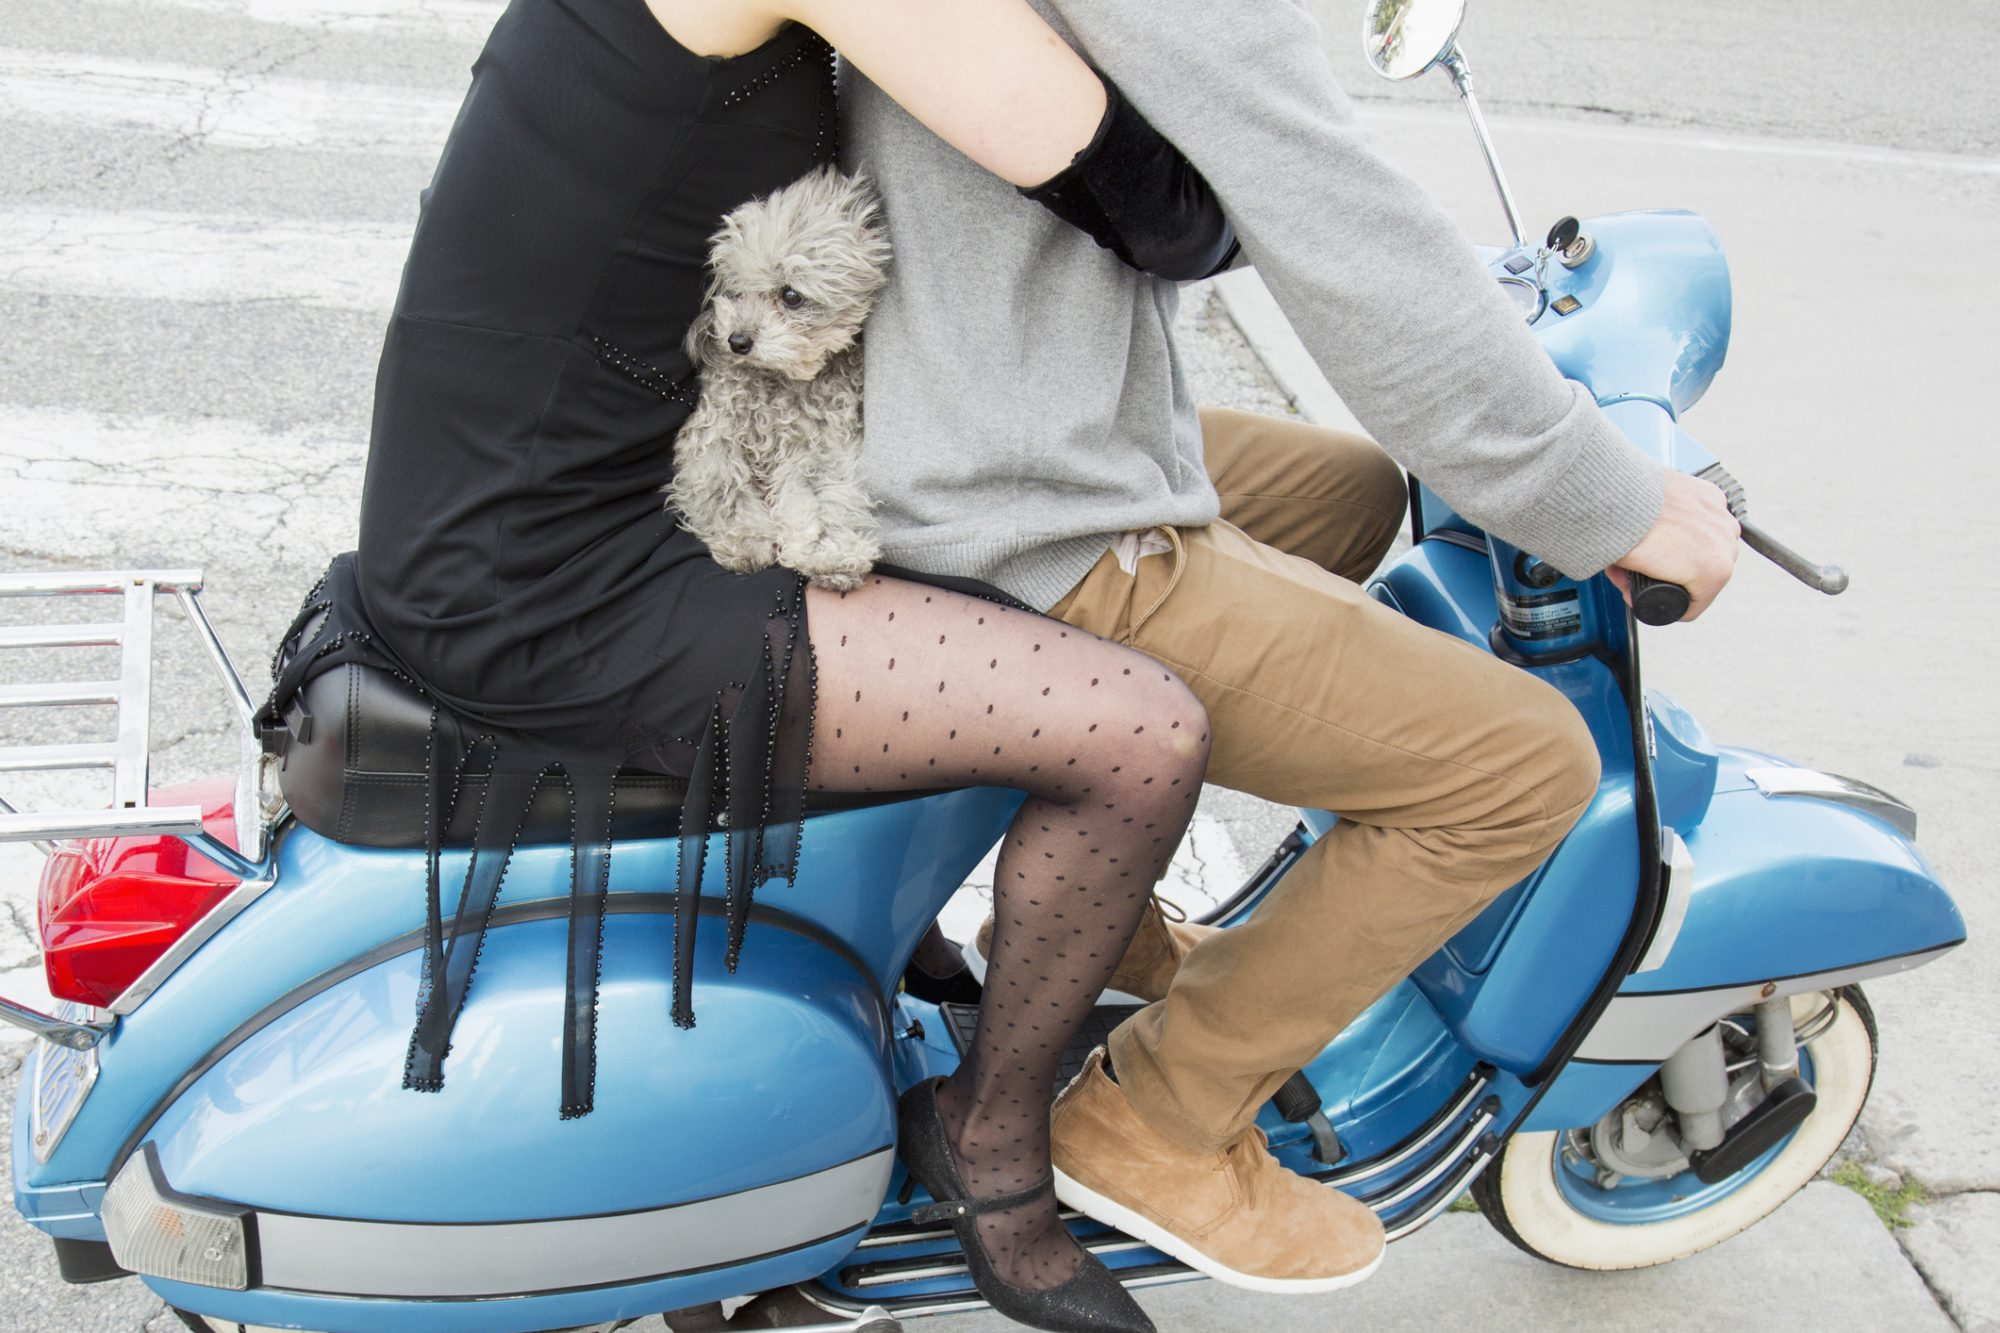 What millennials are looking for in a relationship